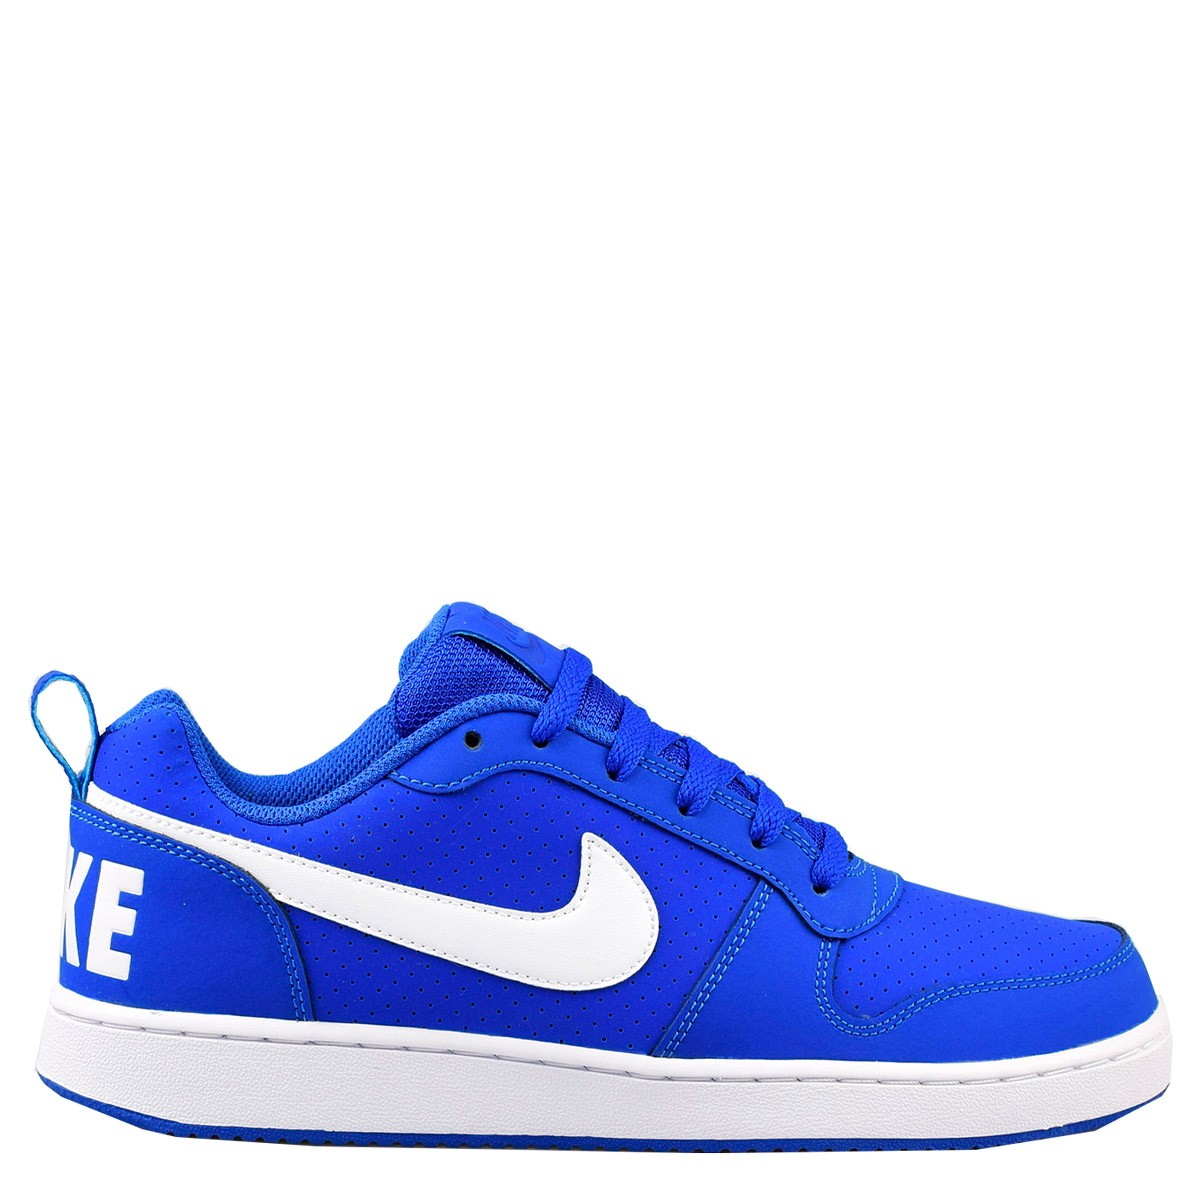 c4b8fa0f01a Bizz Store - Tênis Masculino Nike Court Borough Low Branco